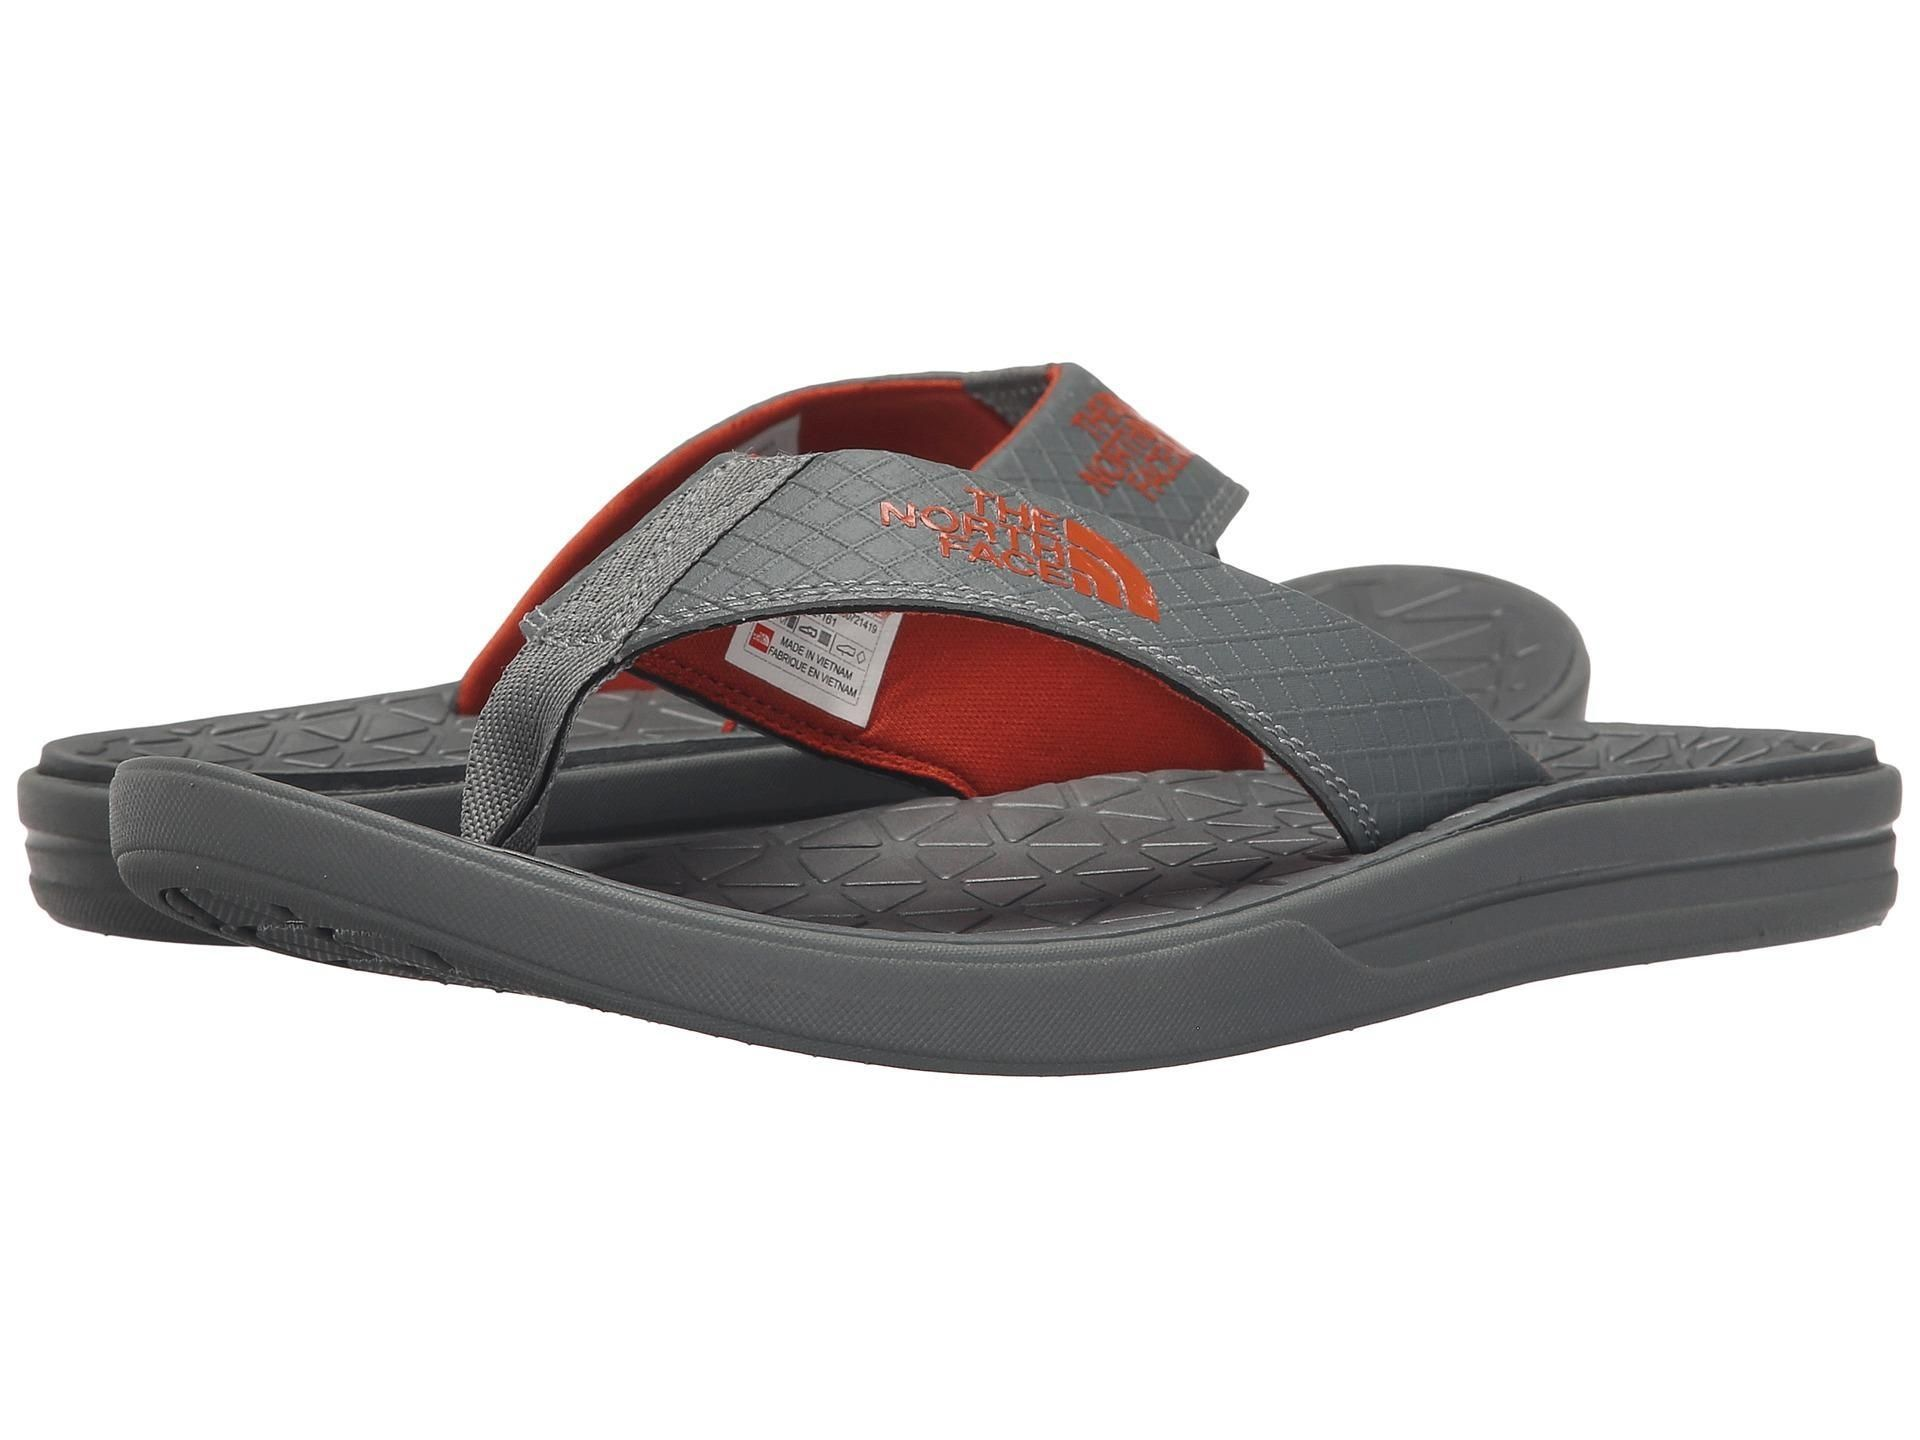 76d38999f0501 The North Face Base Camp Lite Flip Flop - Brought to you by Avarsha ...